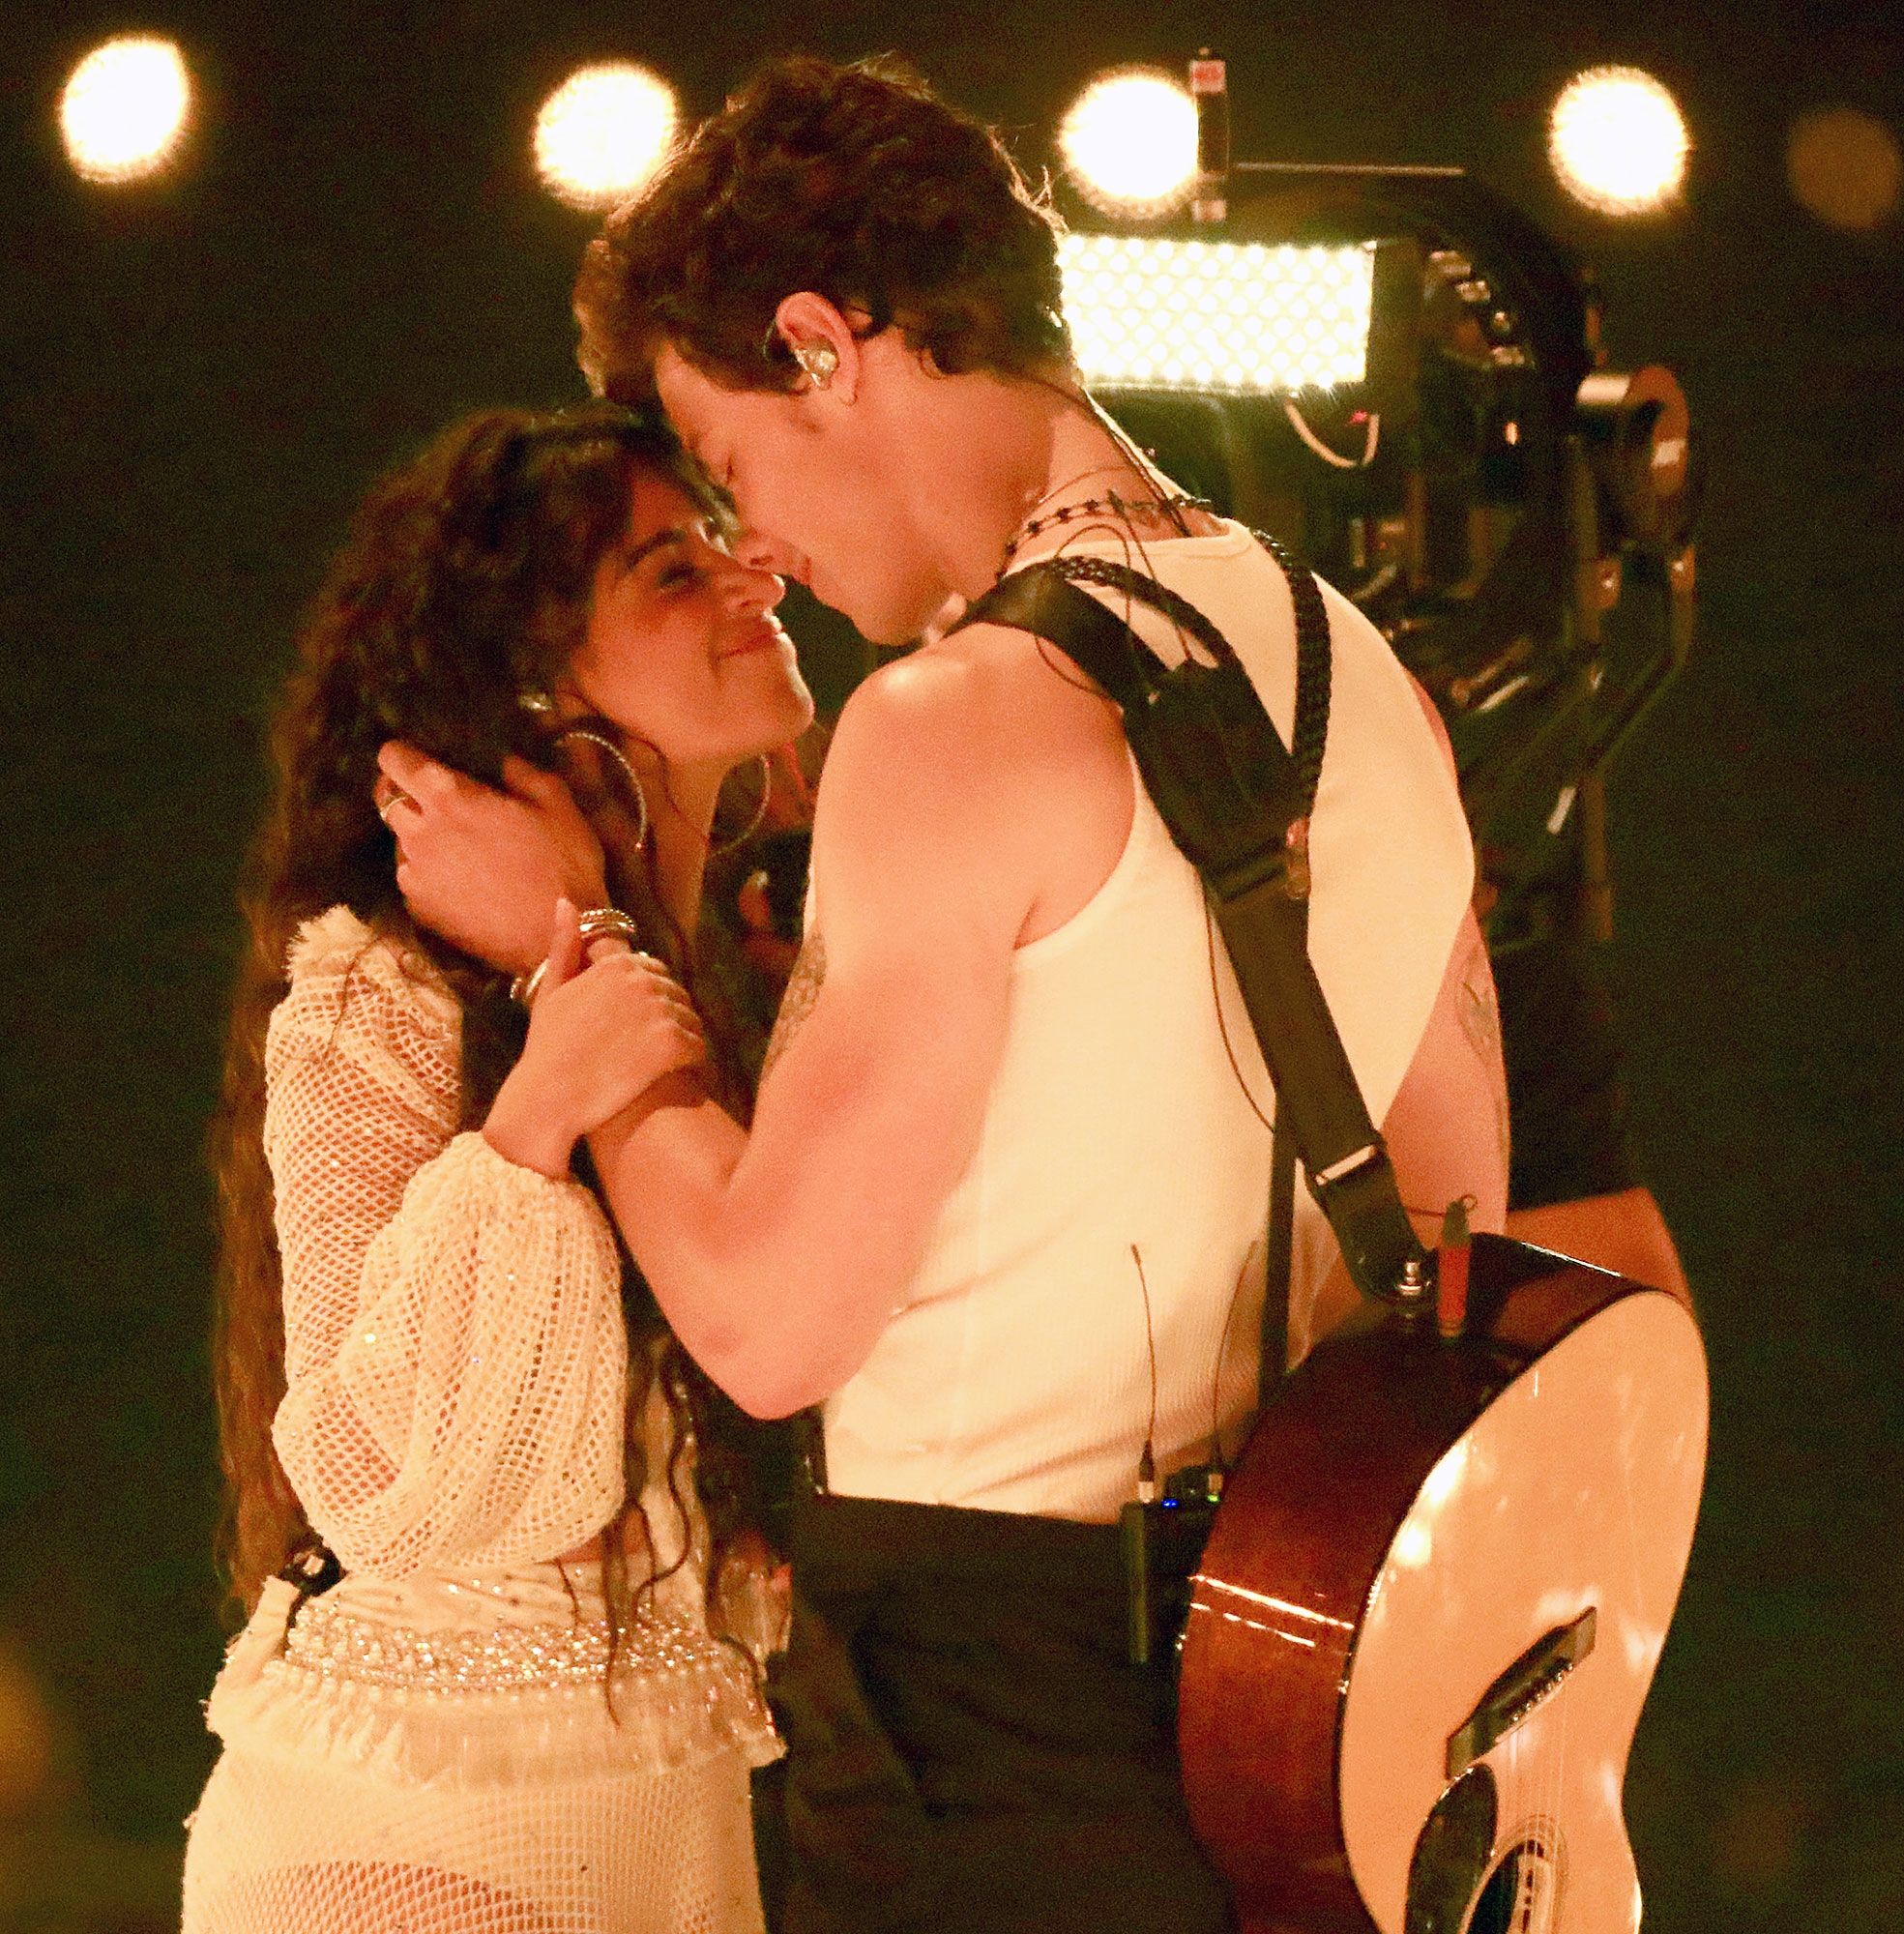 Shawn Mendes and Camila Cabello to Kiss During VMAs 2019 Performance